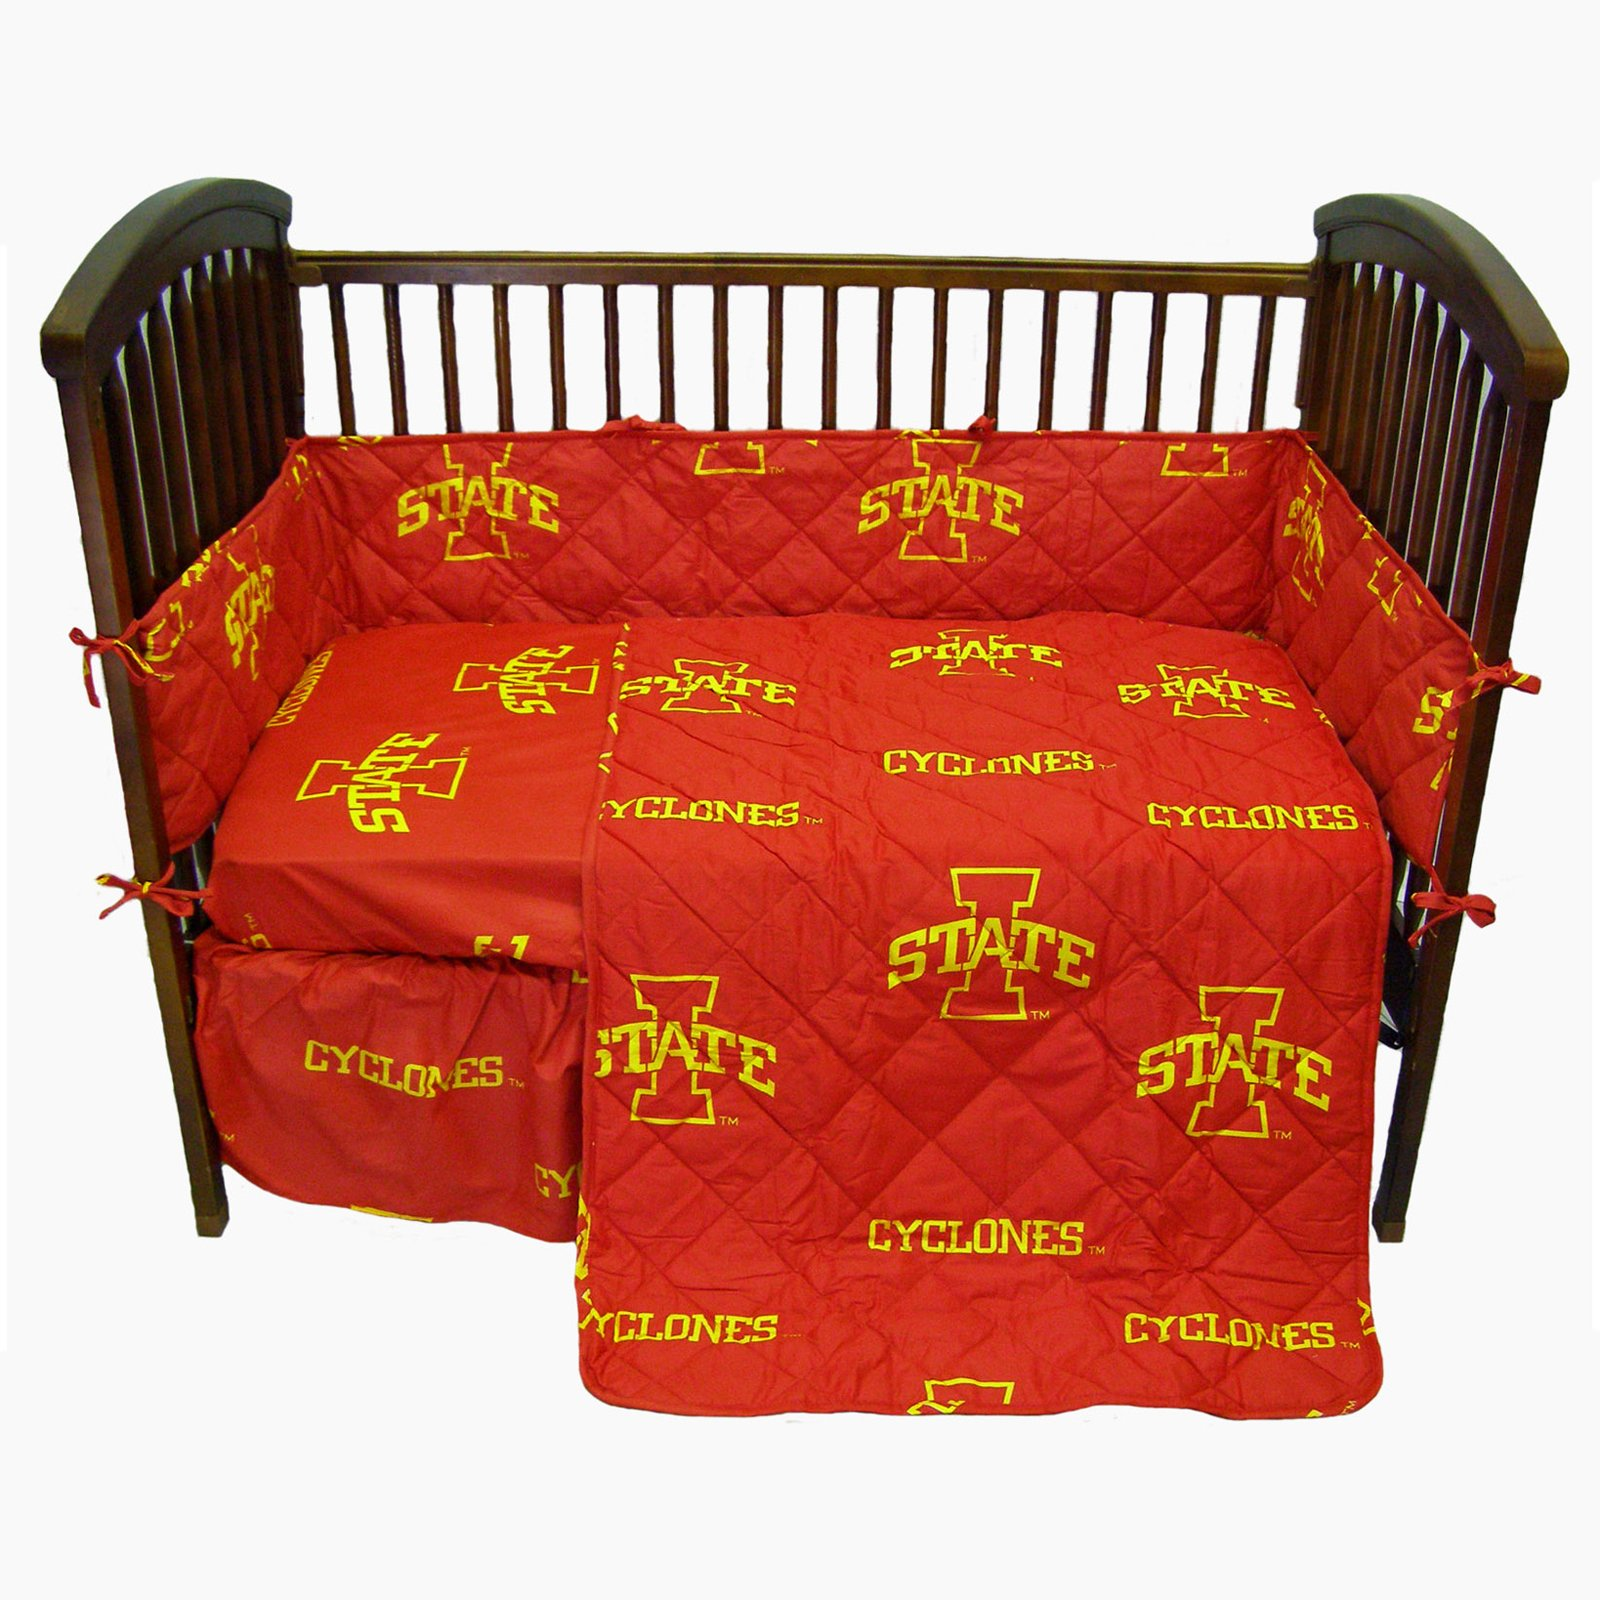 Iowa State Cyclones 5 Piece Crib Set - Entire Set includes: (1) Reversible Comforter, (1) Bed Skirt , (2) Fitted Sheets and (1) Bumper Pad - Decorate Your Nursery and Save Big By Bundling!